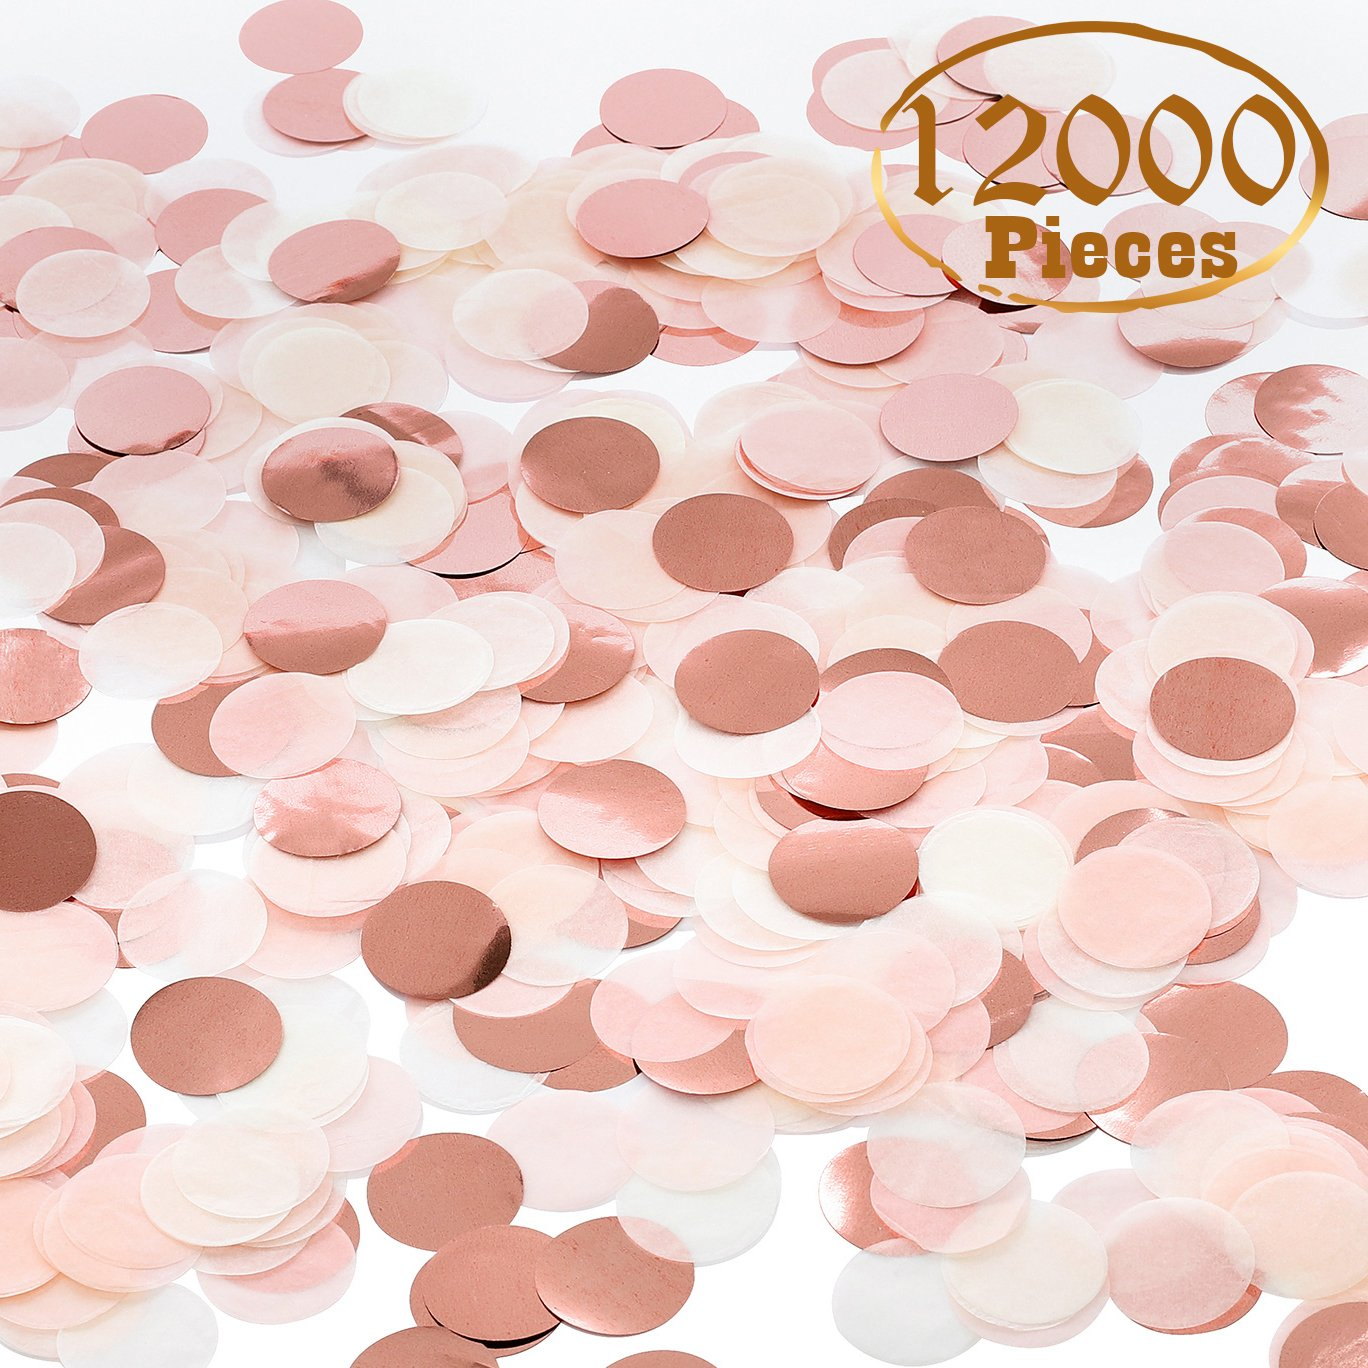 Whaline 12000 Pieces Paper Confetti Circles Tissue Party Table Confetti for Wedding, Holiday, Anniversary, Birthday, Mixed Colors, 1 Inch (120 grams)